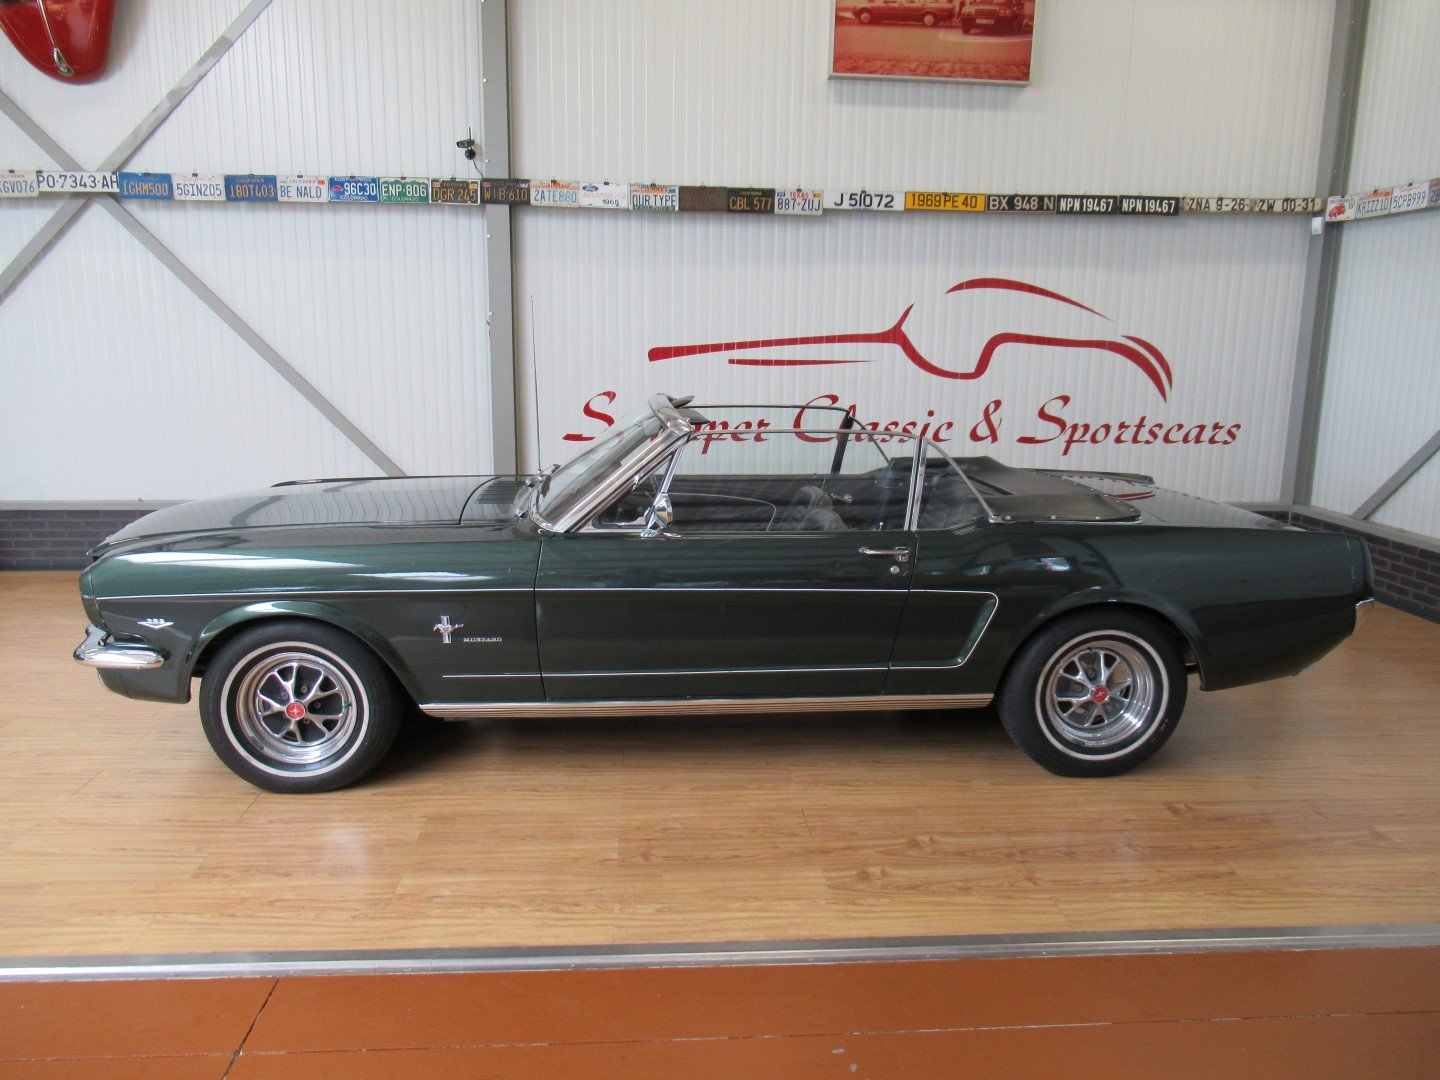 1966 Ford Mustang 289 V8 Cabrio 4 Speed Manual Second owner For Sale (picture 2 of 6)